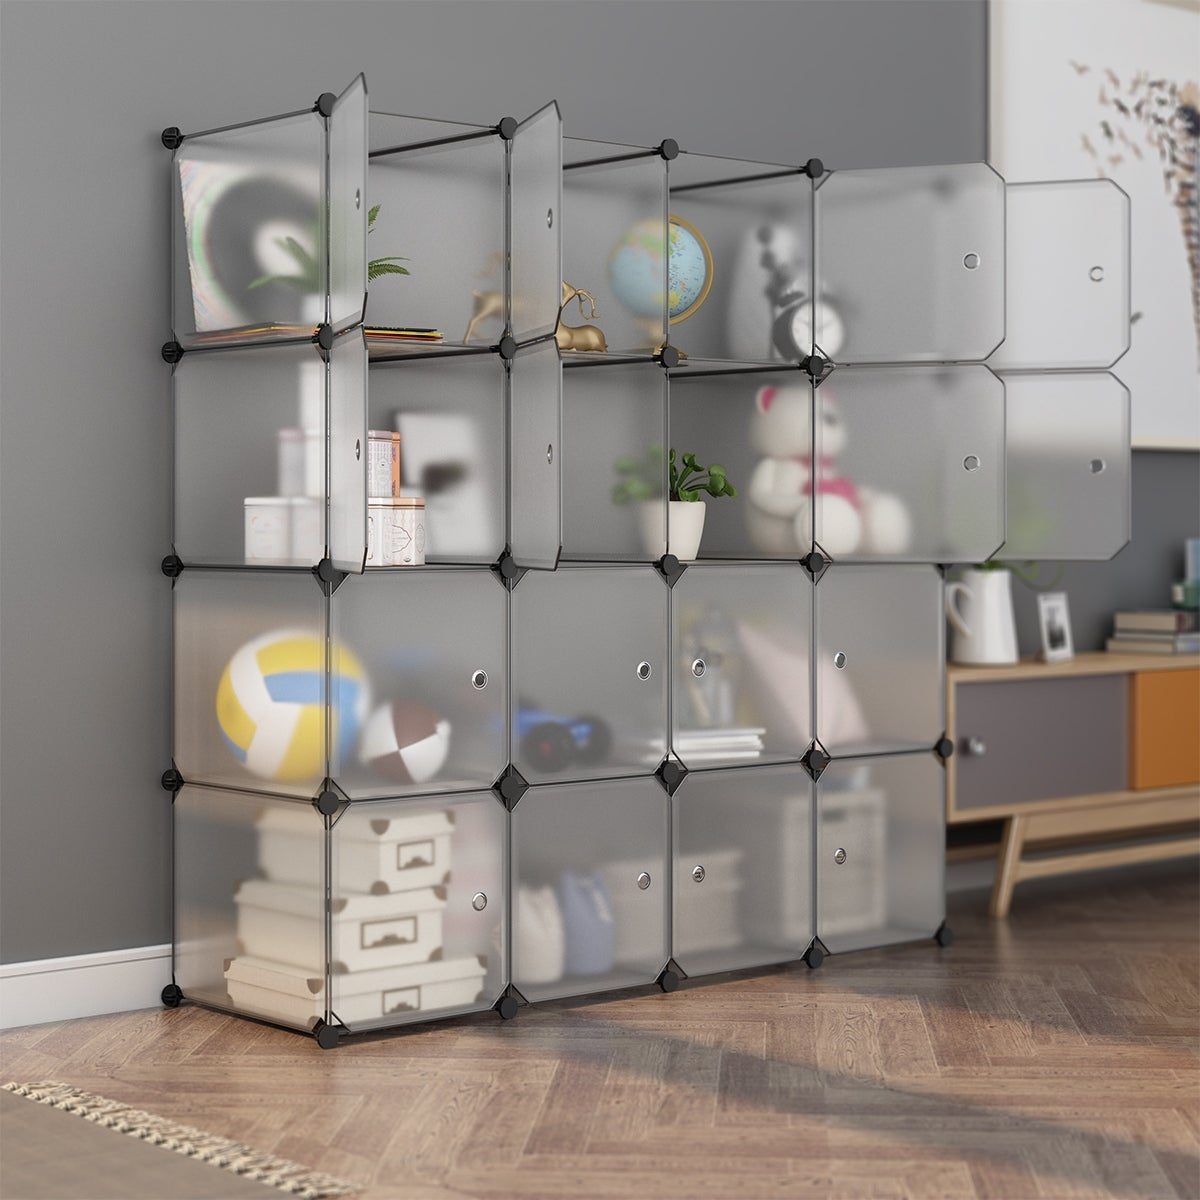 Langria 16 Cube Diy Interlocking Modular Shelving Storage Organizer Closet